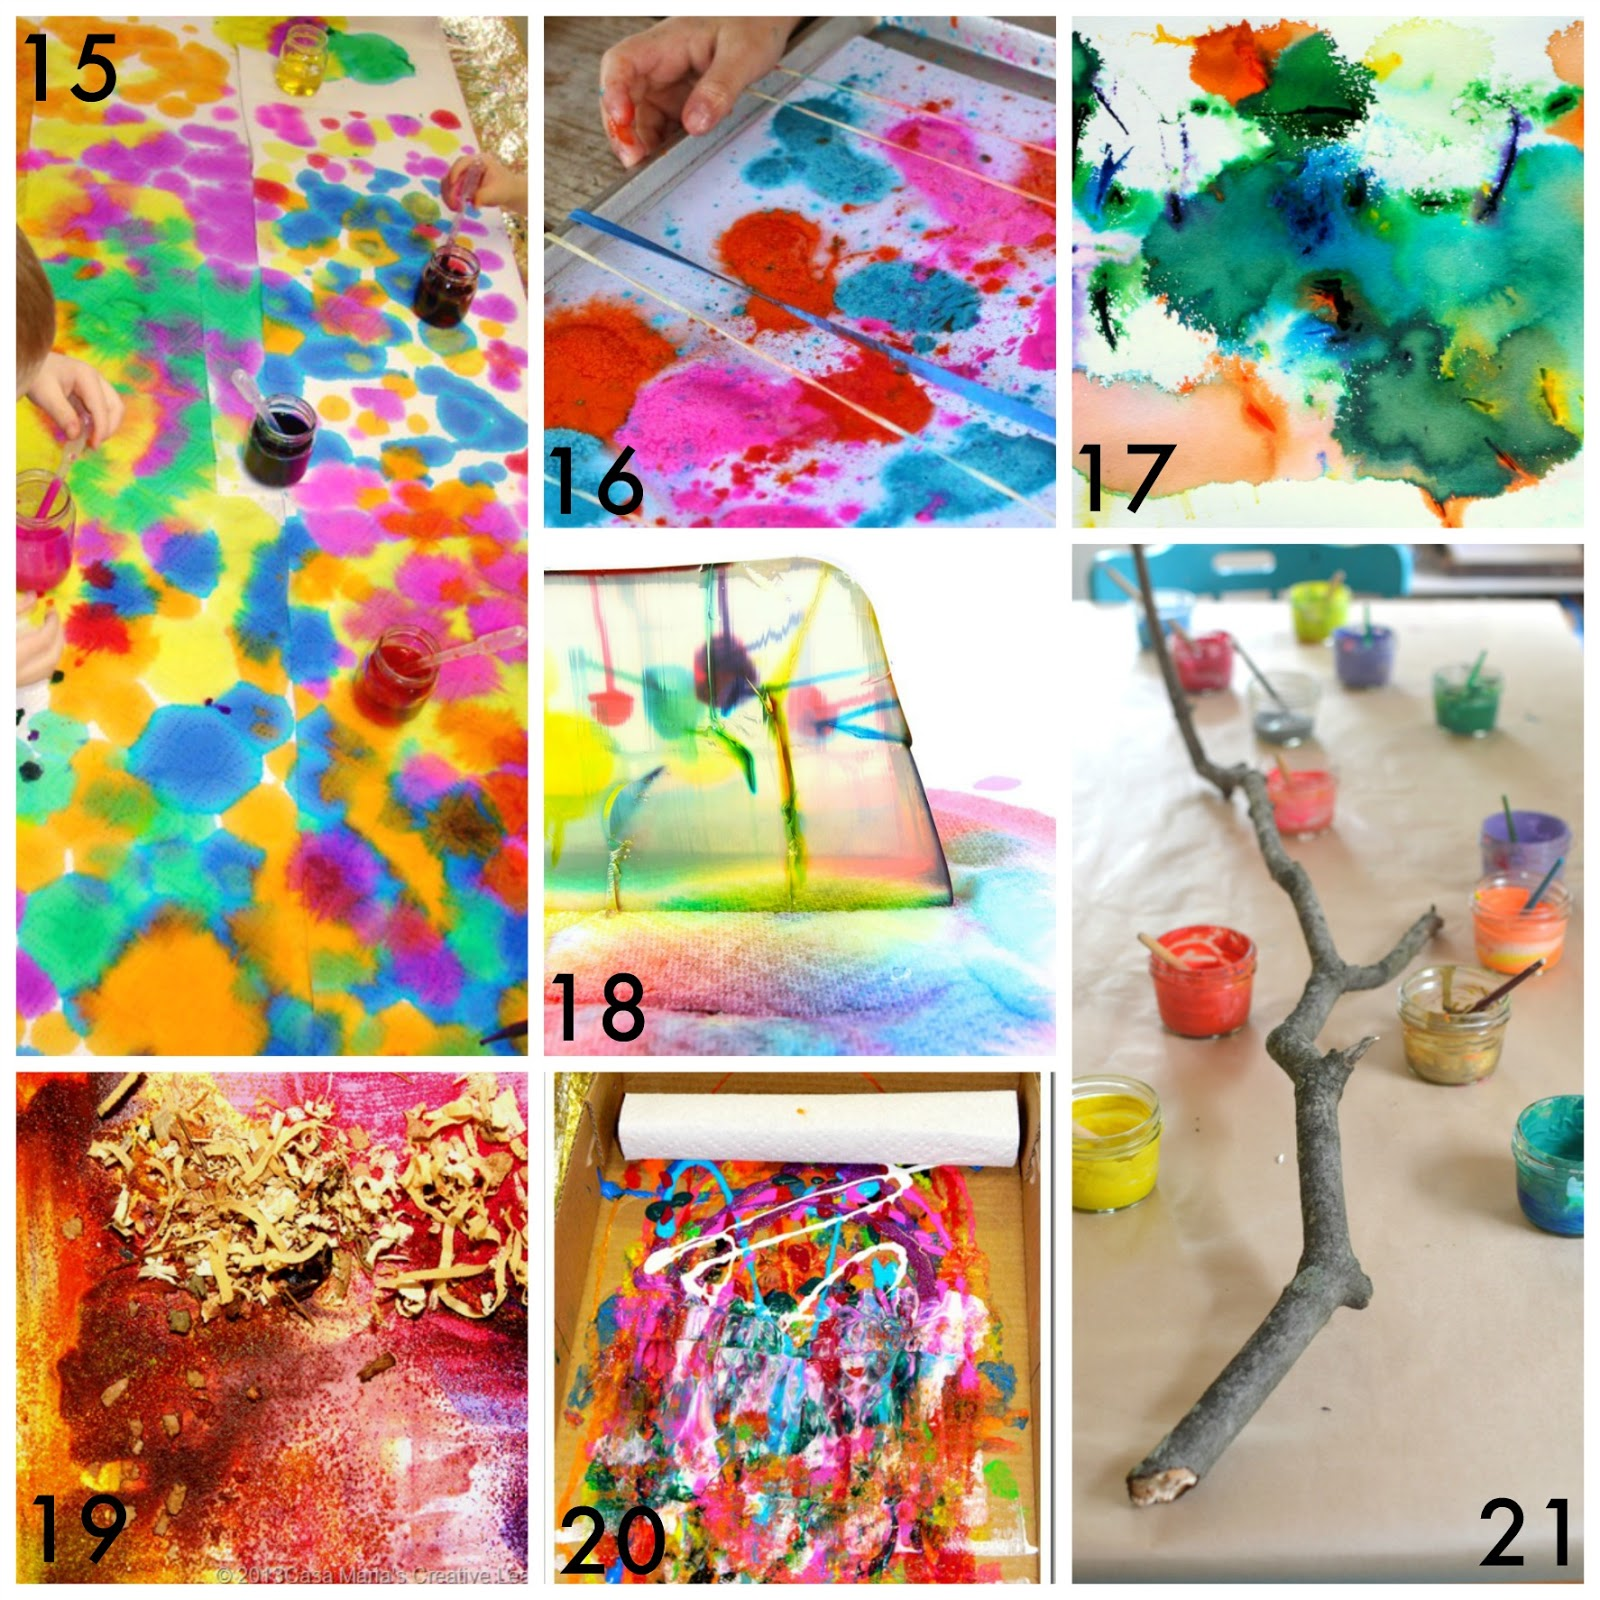 50 easy process art activities for kids from fun at home with kids - Free Painting Games For Preschoolers